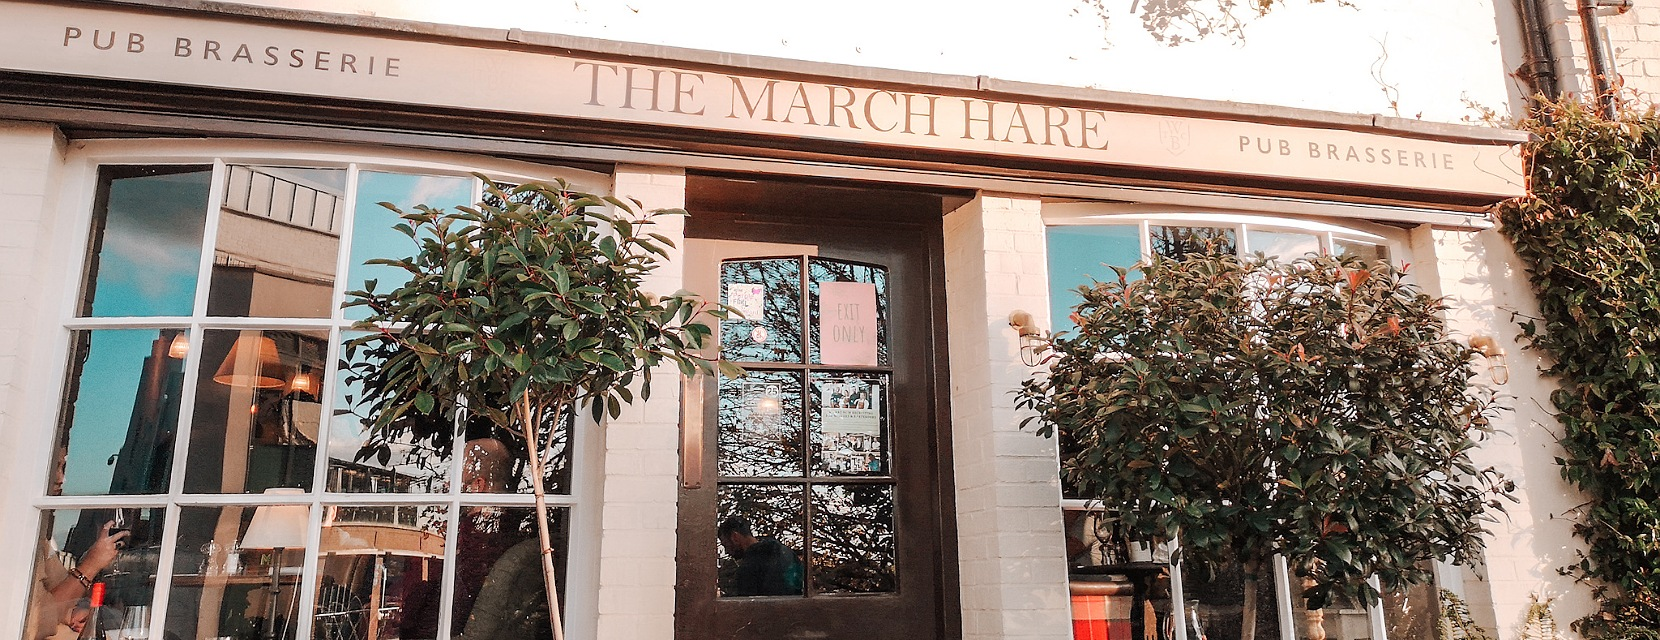 Sunday Lunch at The March Hare, Guildford 10